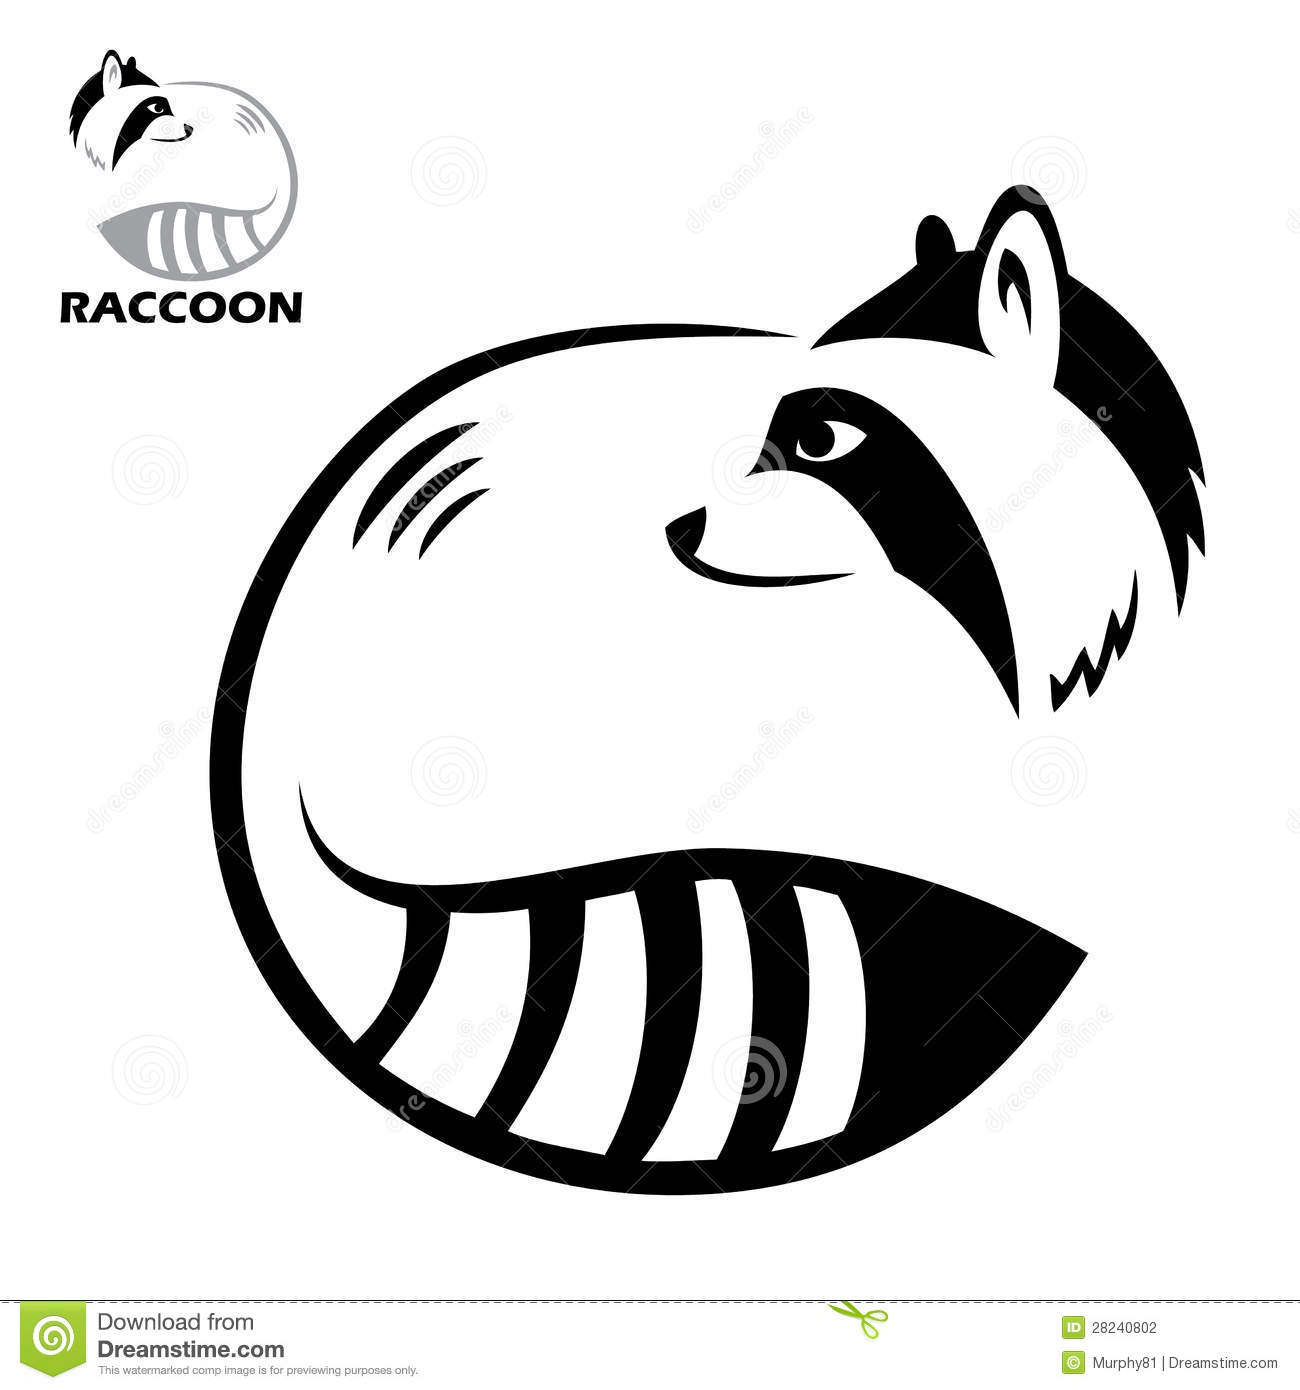 Raccoon label stock vector. Image of sweet, drawing ... Raccoon Face Clip Art Black And White